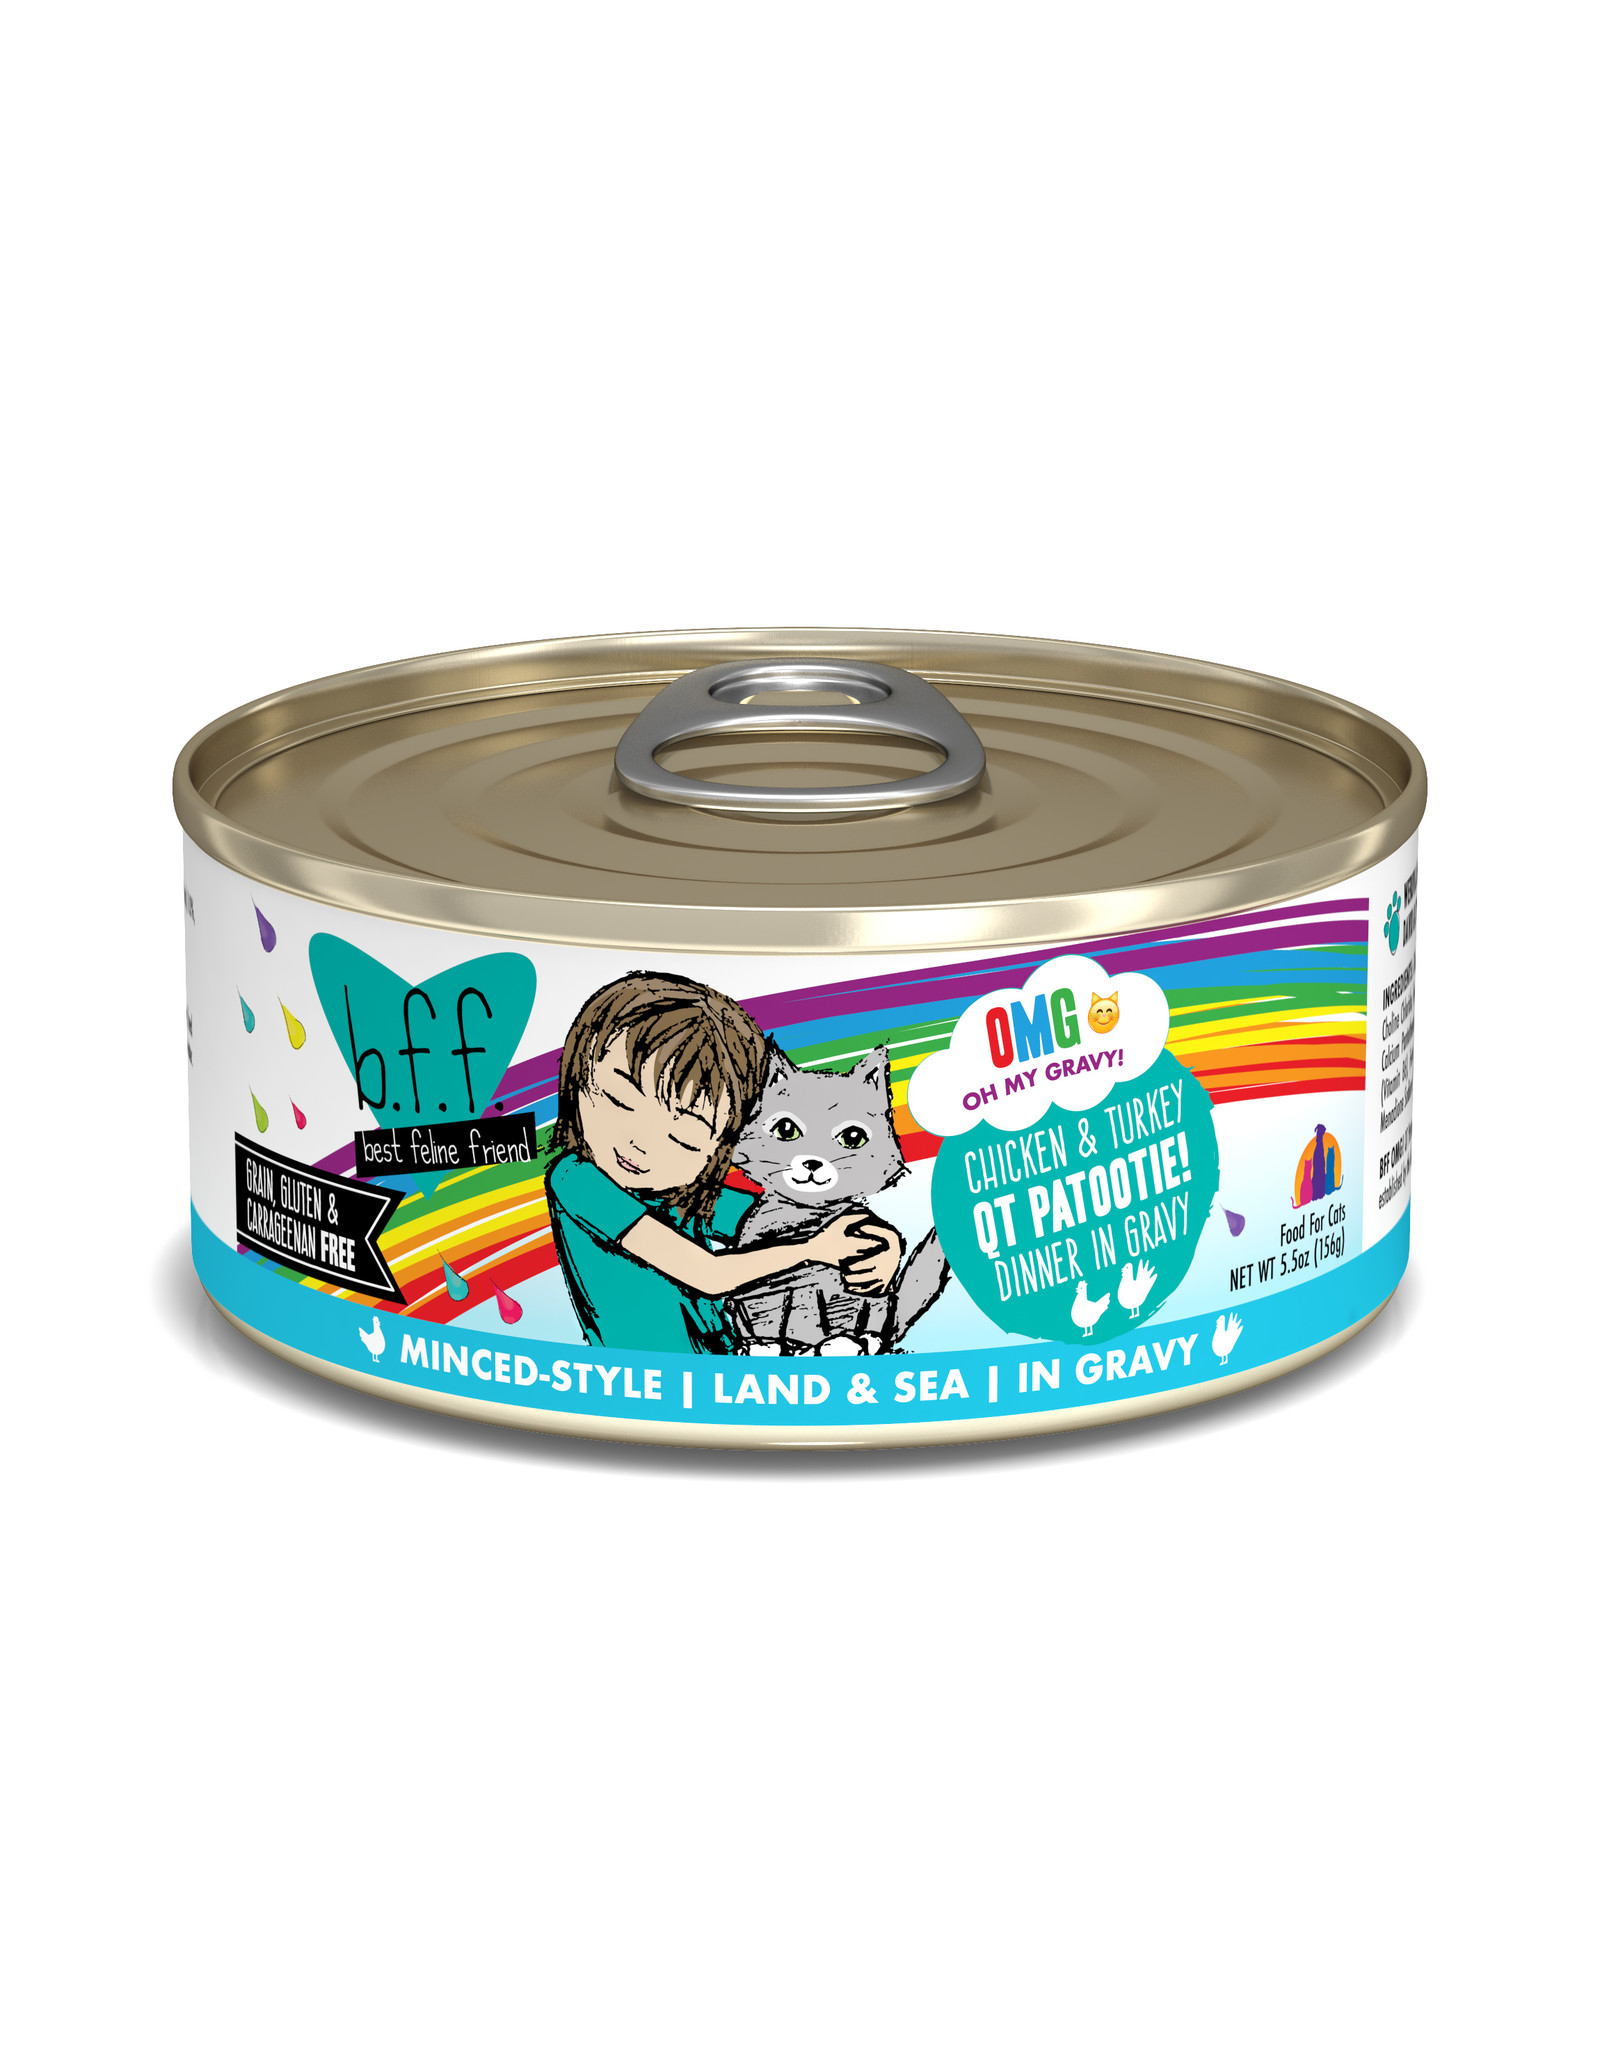 Weruva WERUVA CAT B.F.F. OMG QT PATOOTIE! CHICKEN & TURKEY DINNER IN GRAVY 5.5OZ